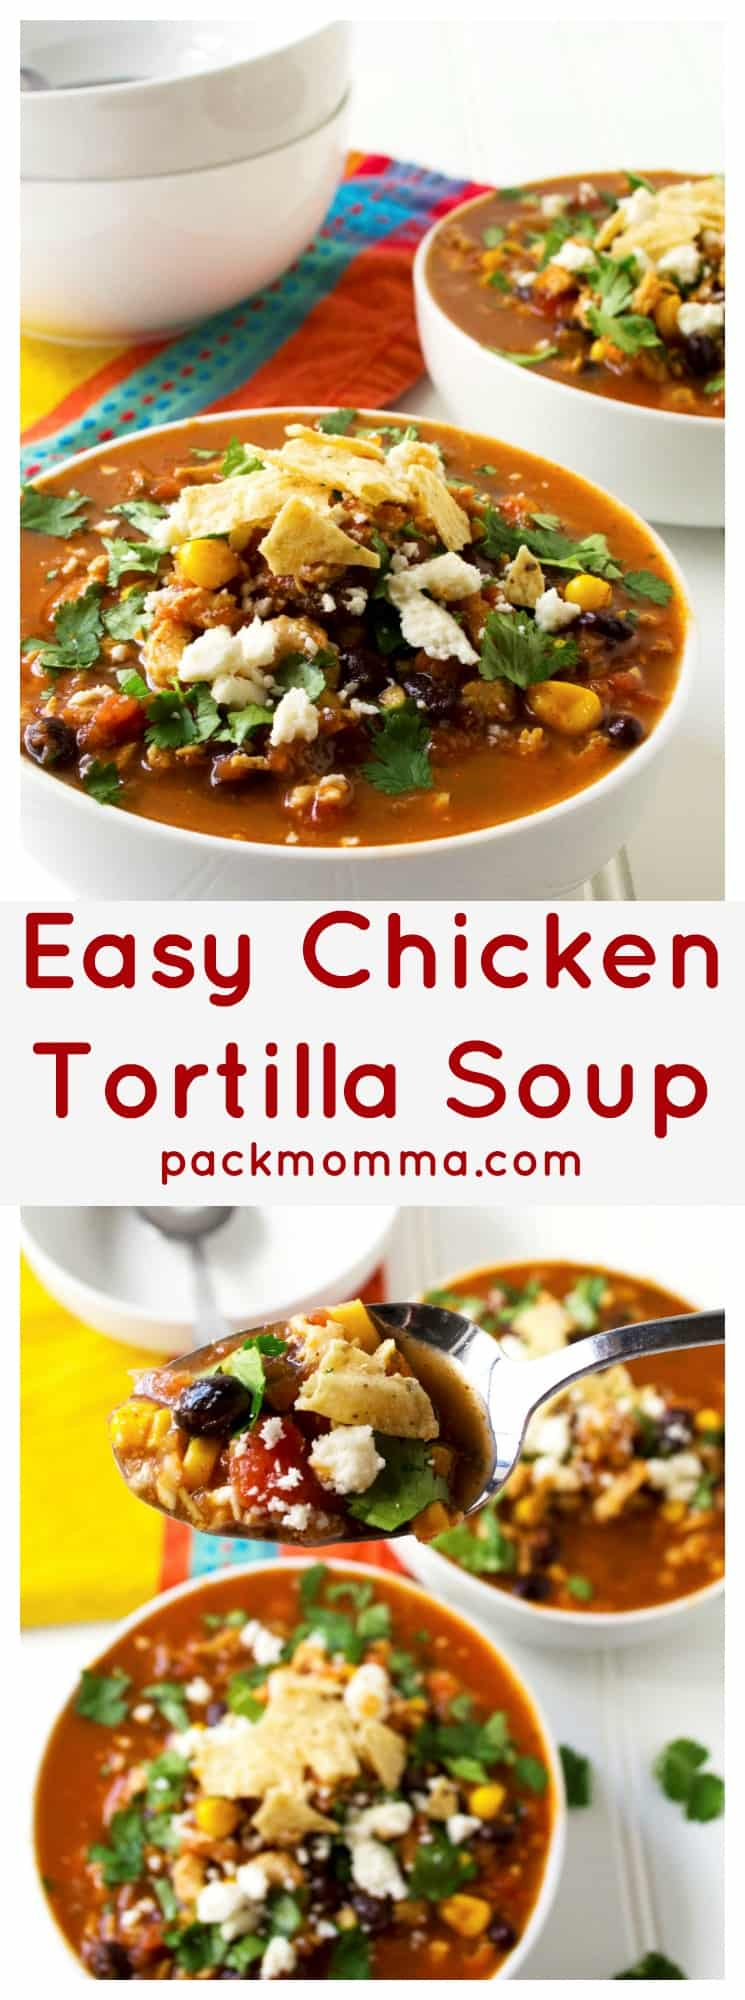 Easy Chicken Tortilla Soup | Easy Chicken Tortilla Soup is the perfect hearty spicy comfort food to serve up to your family and friends.This is sure to be your new favorite soup recipe. | Pack Momma | https://www.packmomma.com